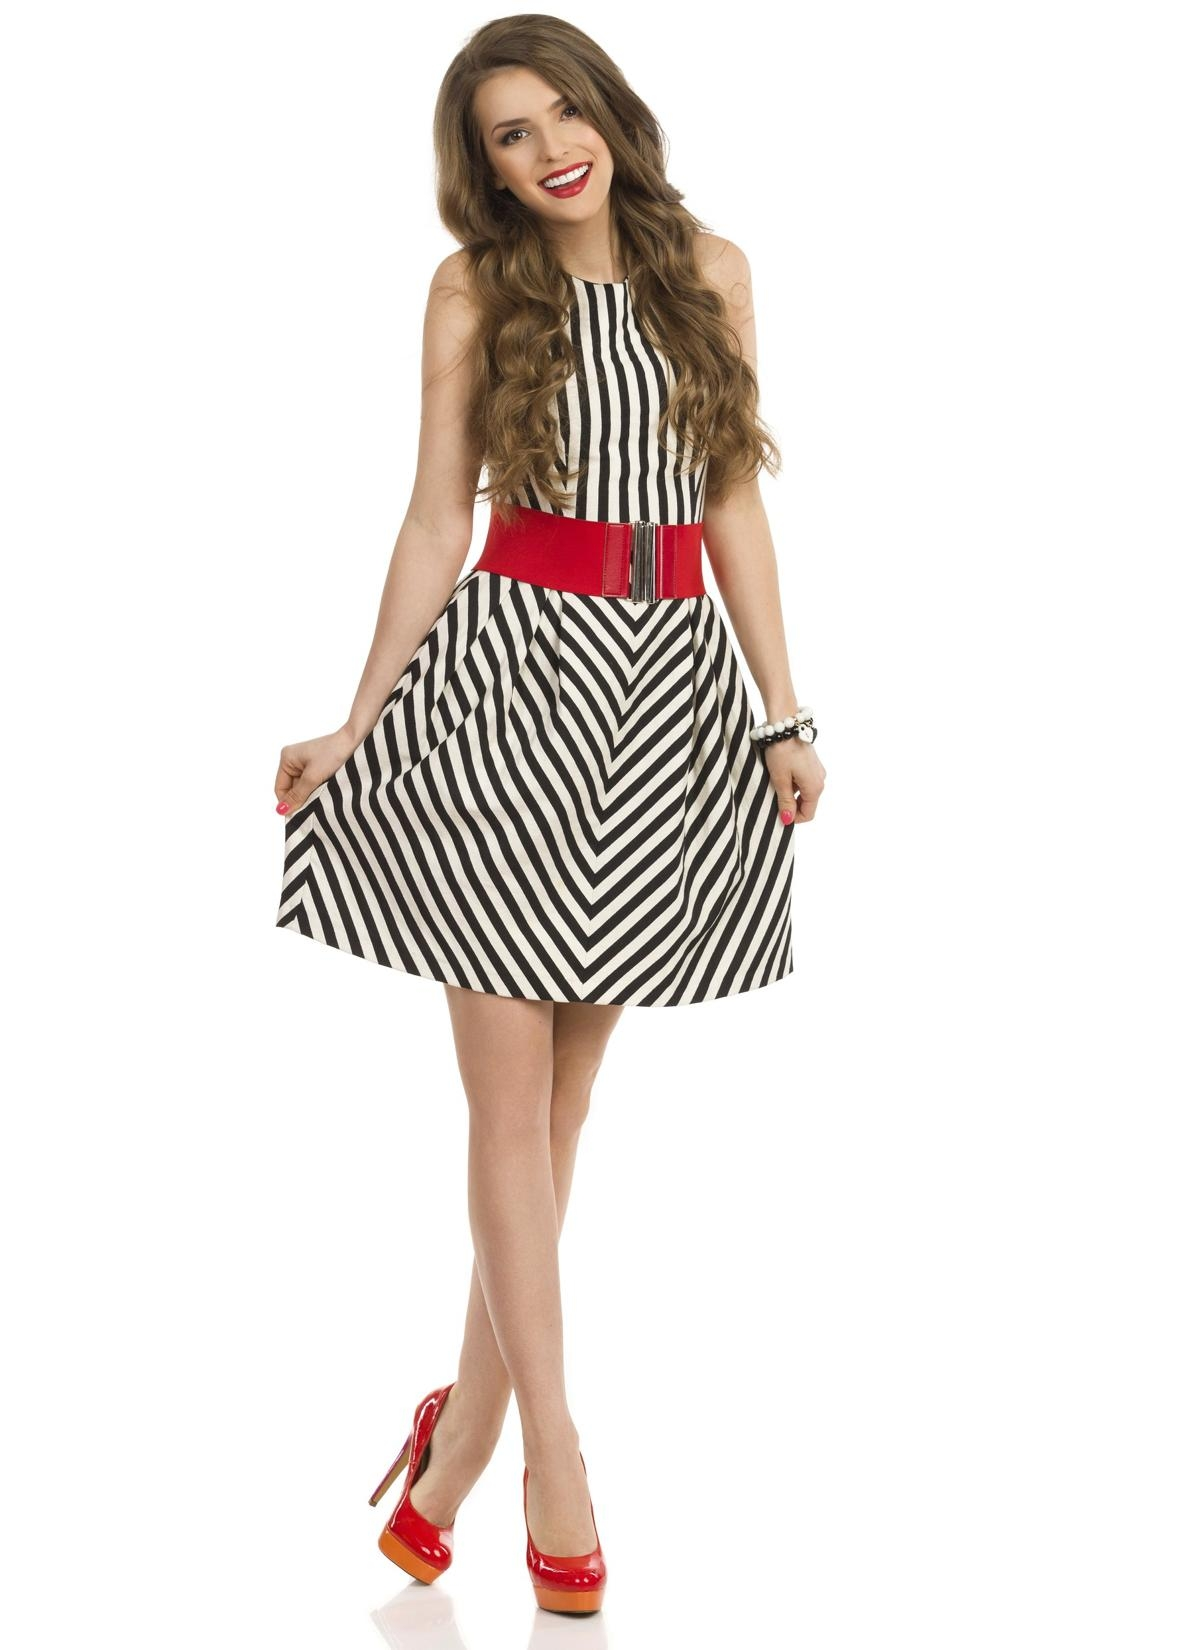 awesome summer dresses that teens will just love